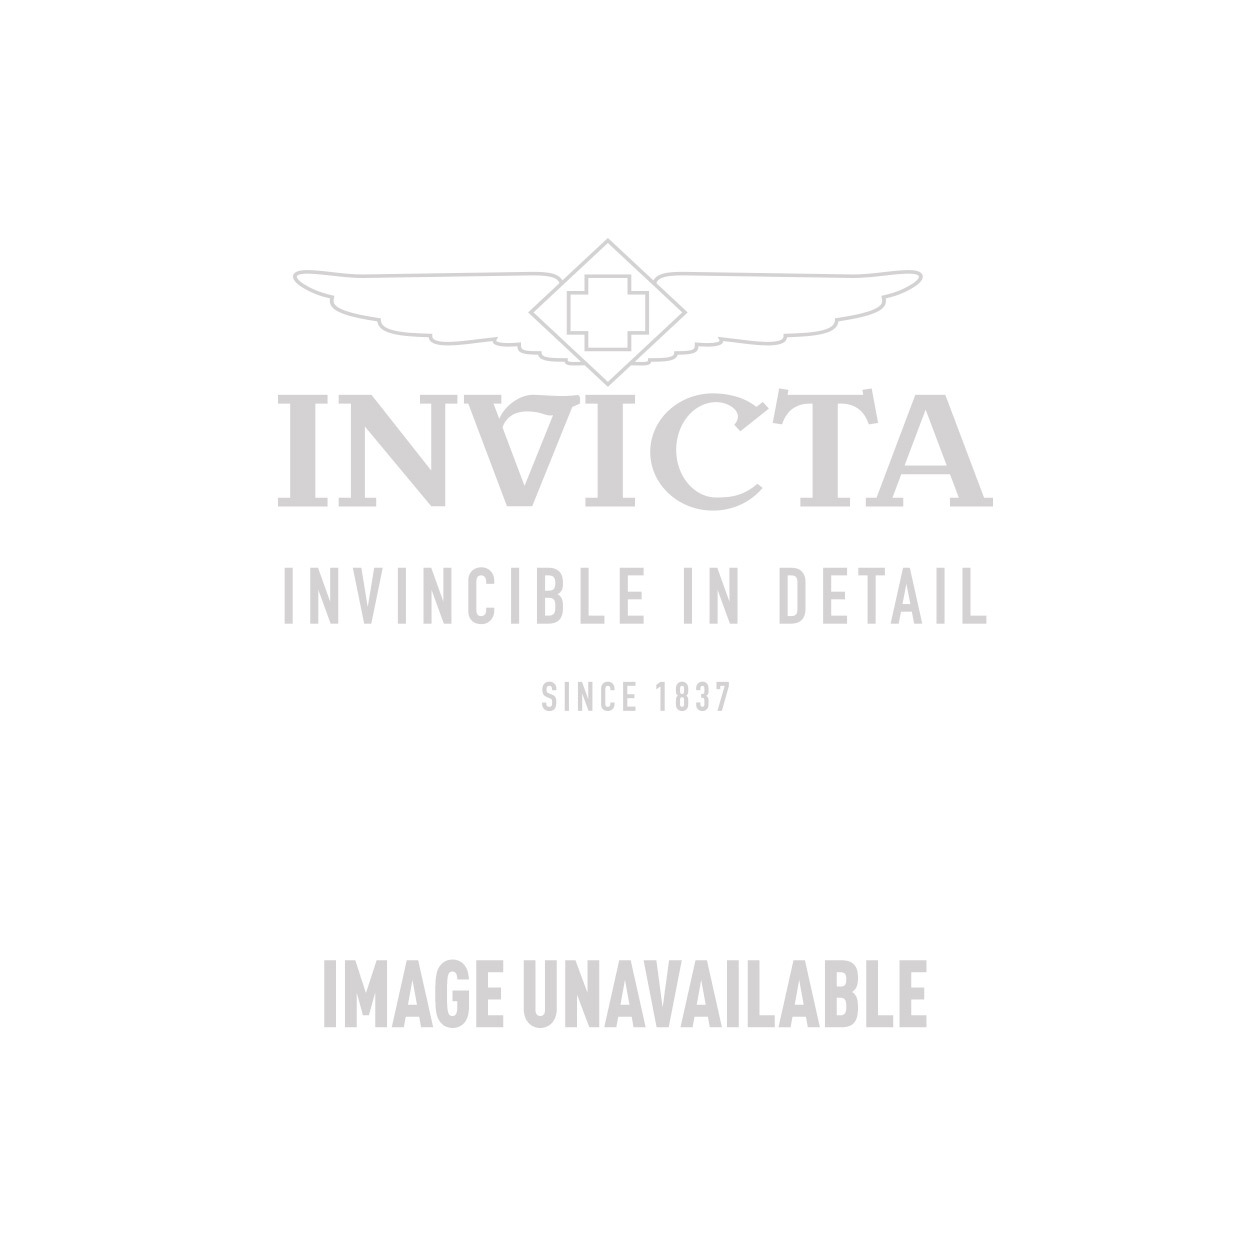 Invicta Pro Diver Quartz Watch - Stainless Steel case Stainless Steel band - Model 15027